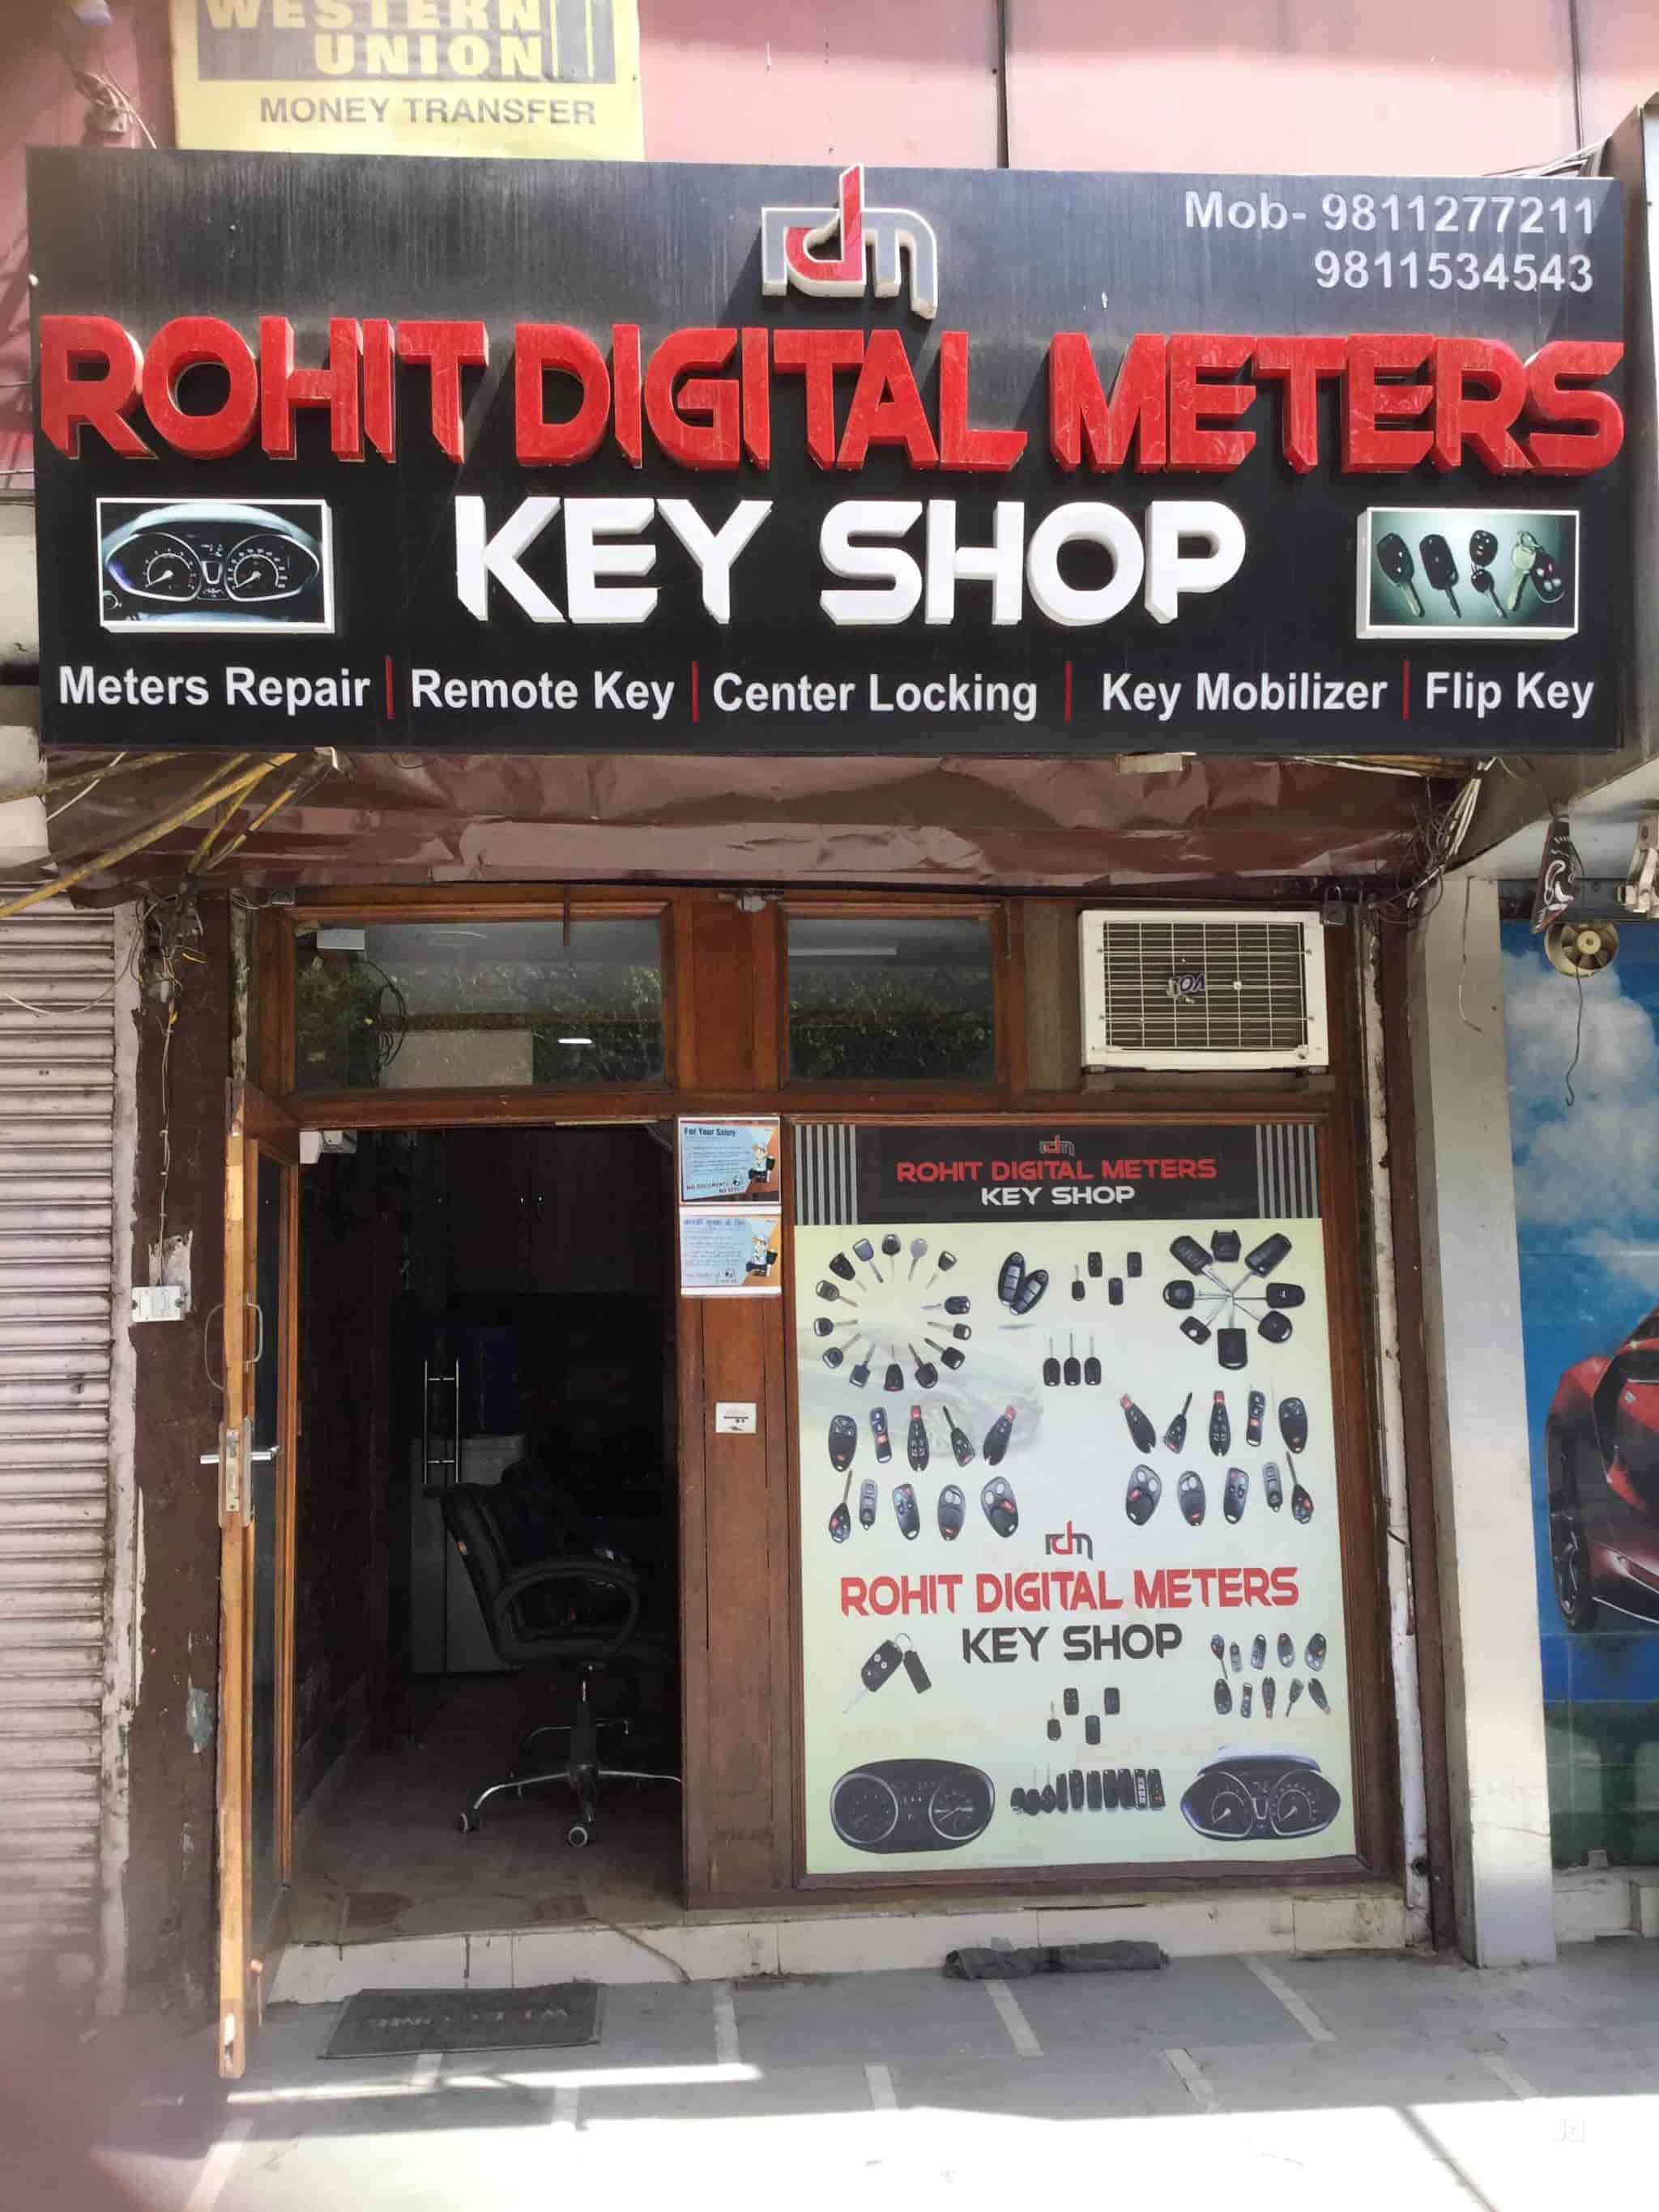 Rohit Digital Meters Key Shop, Karampura - Duplicate Key